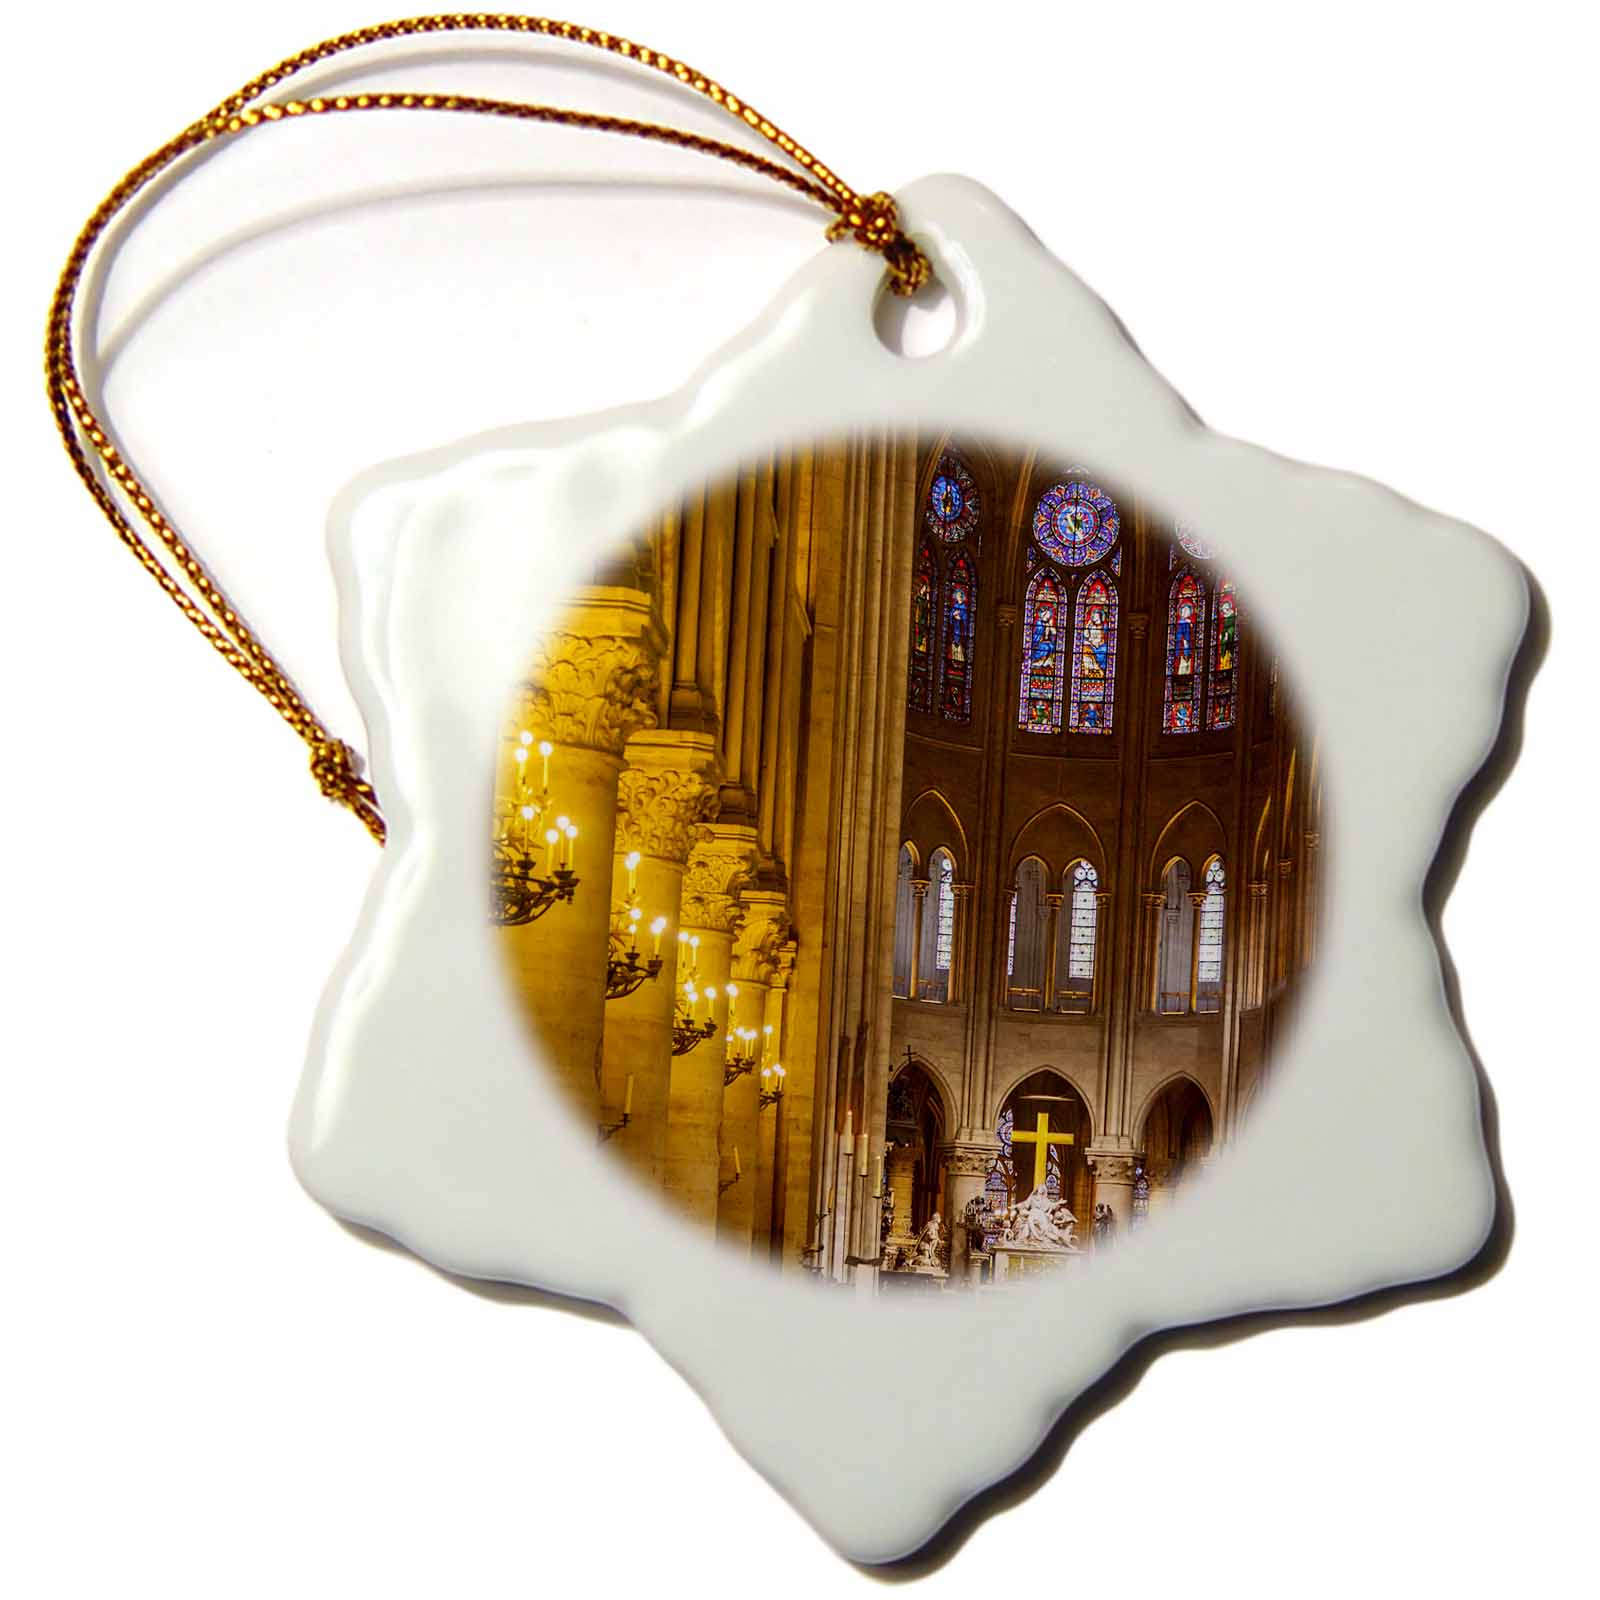 3dRose Interior of Notre Dame Cathedral, Paris, France - EU09 BJN0676 - Brian Jannsen - Snowflake Ornament, 3-inch